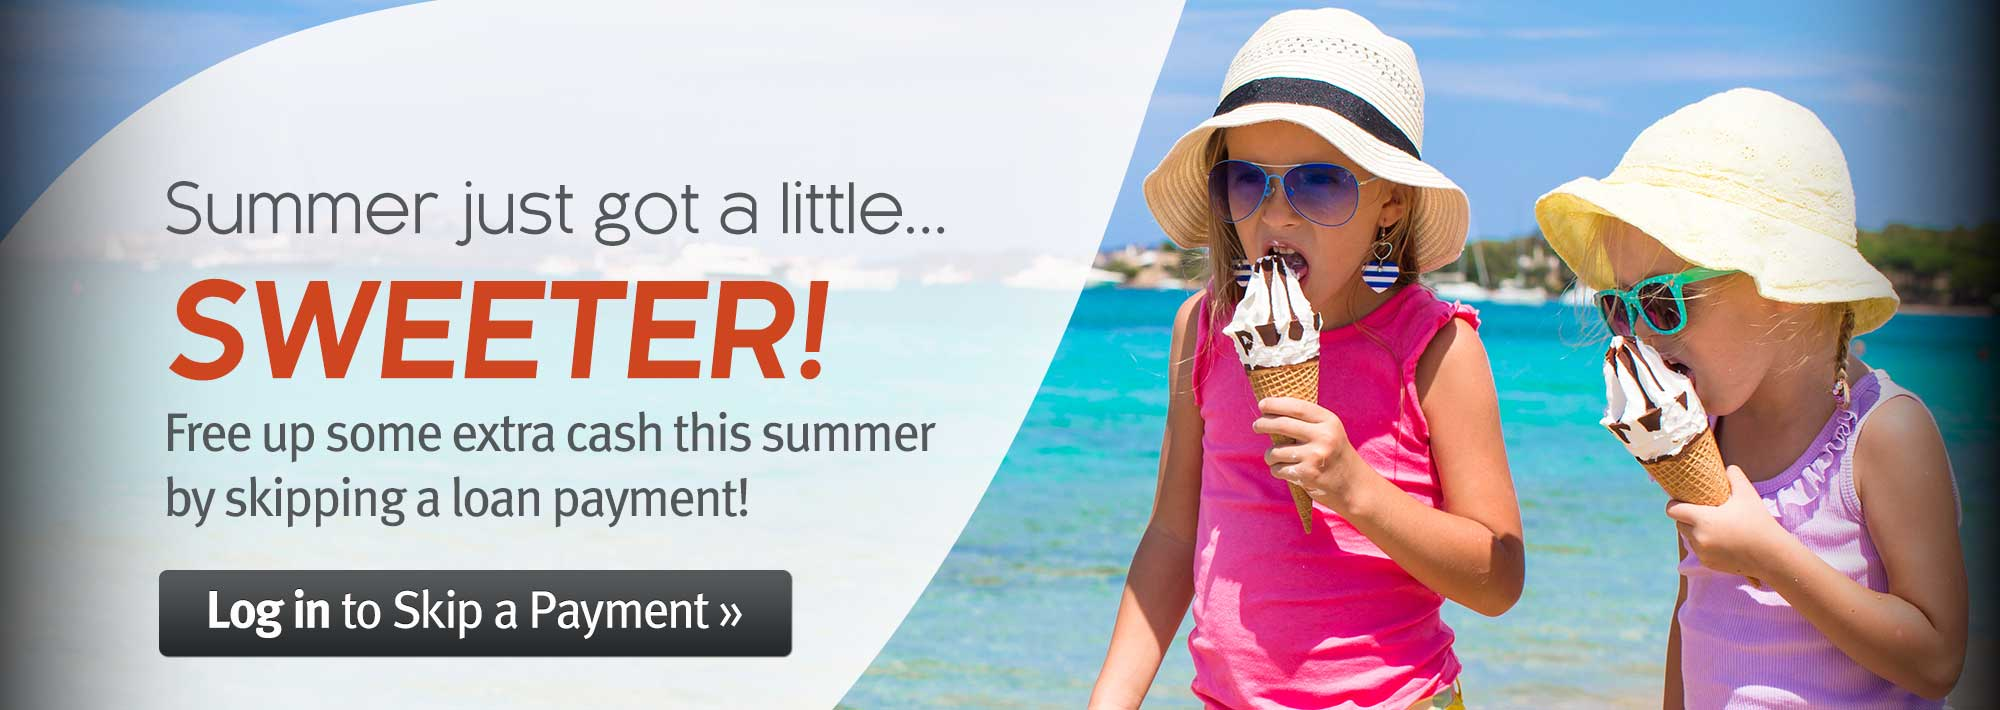 Summer just got a little sweeter! Free up some extra cash this summer by skipping a loan payment.